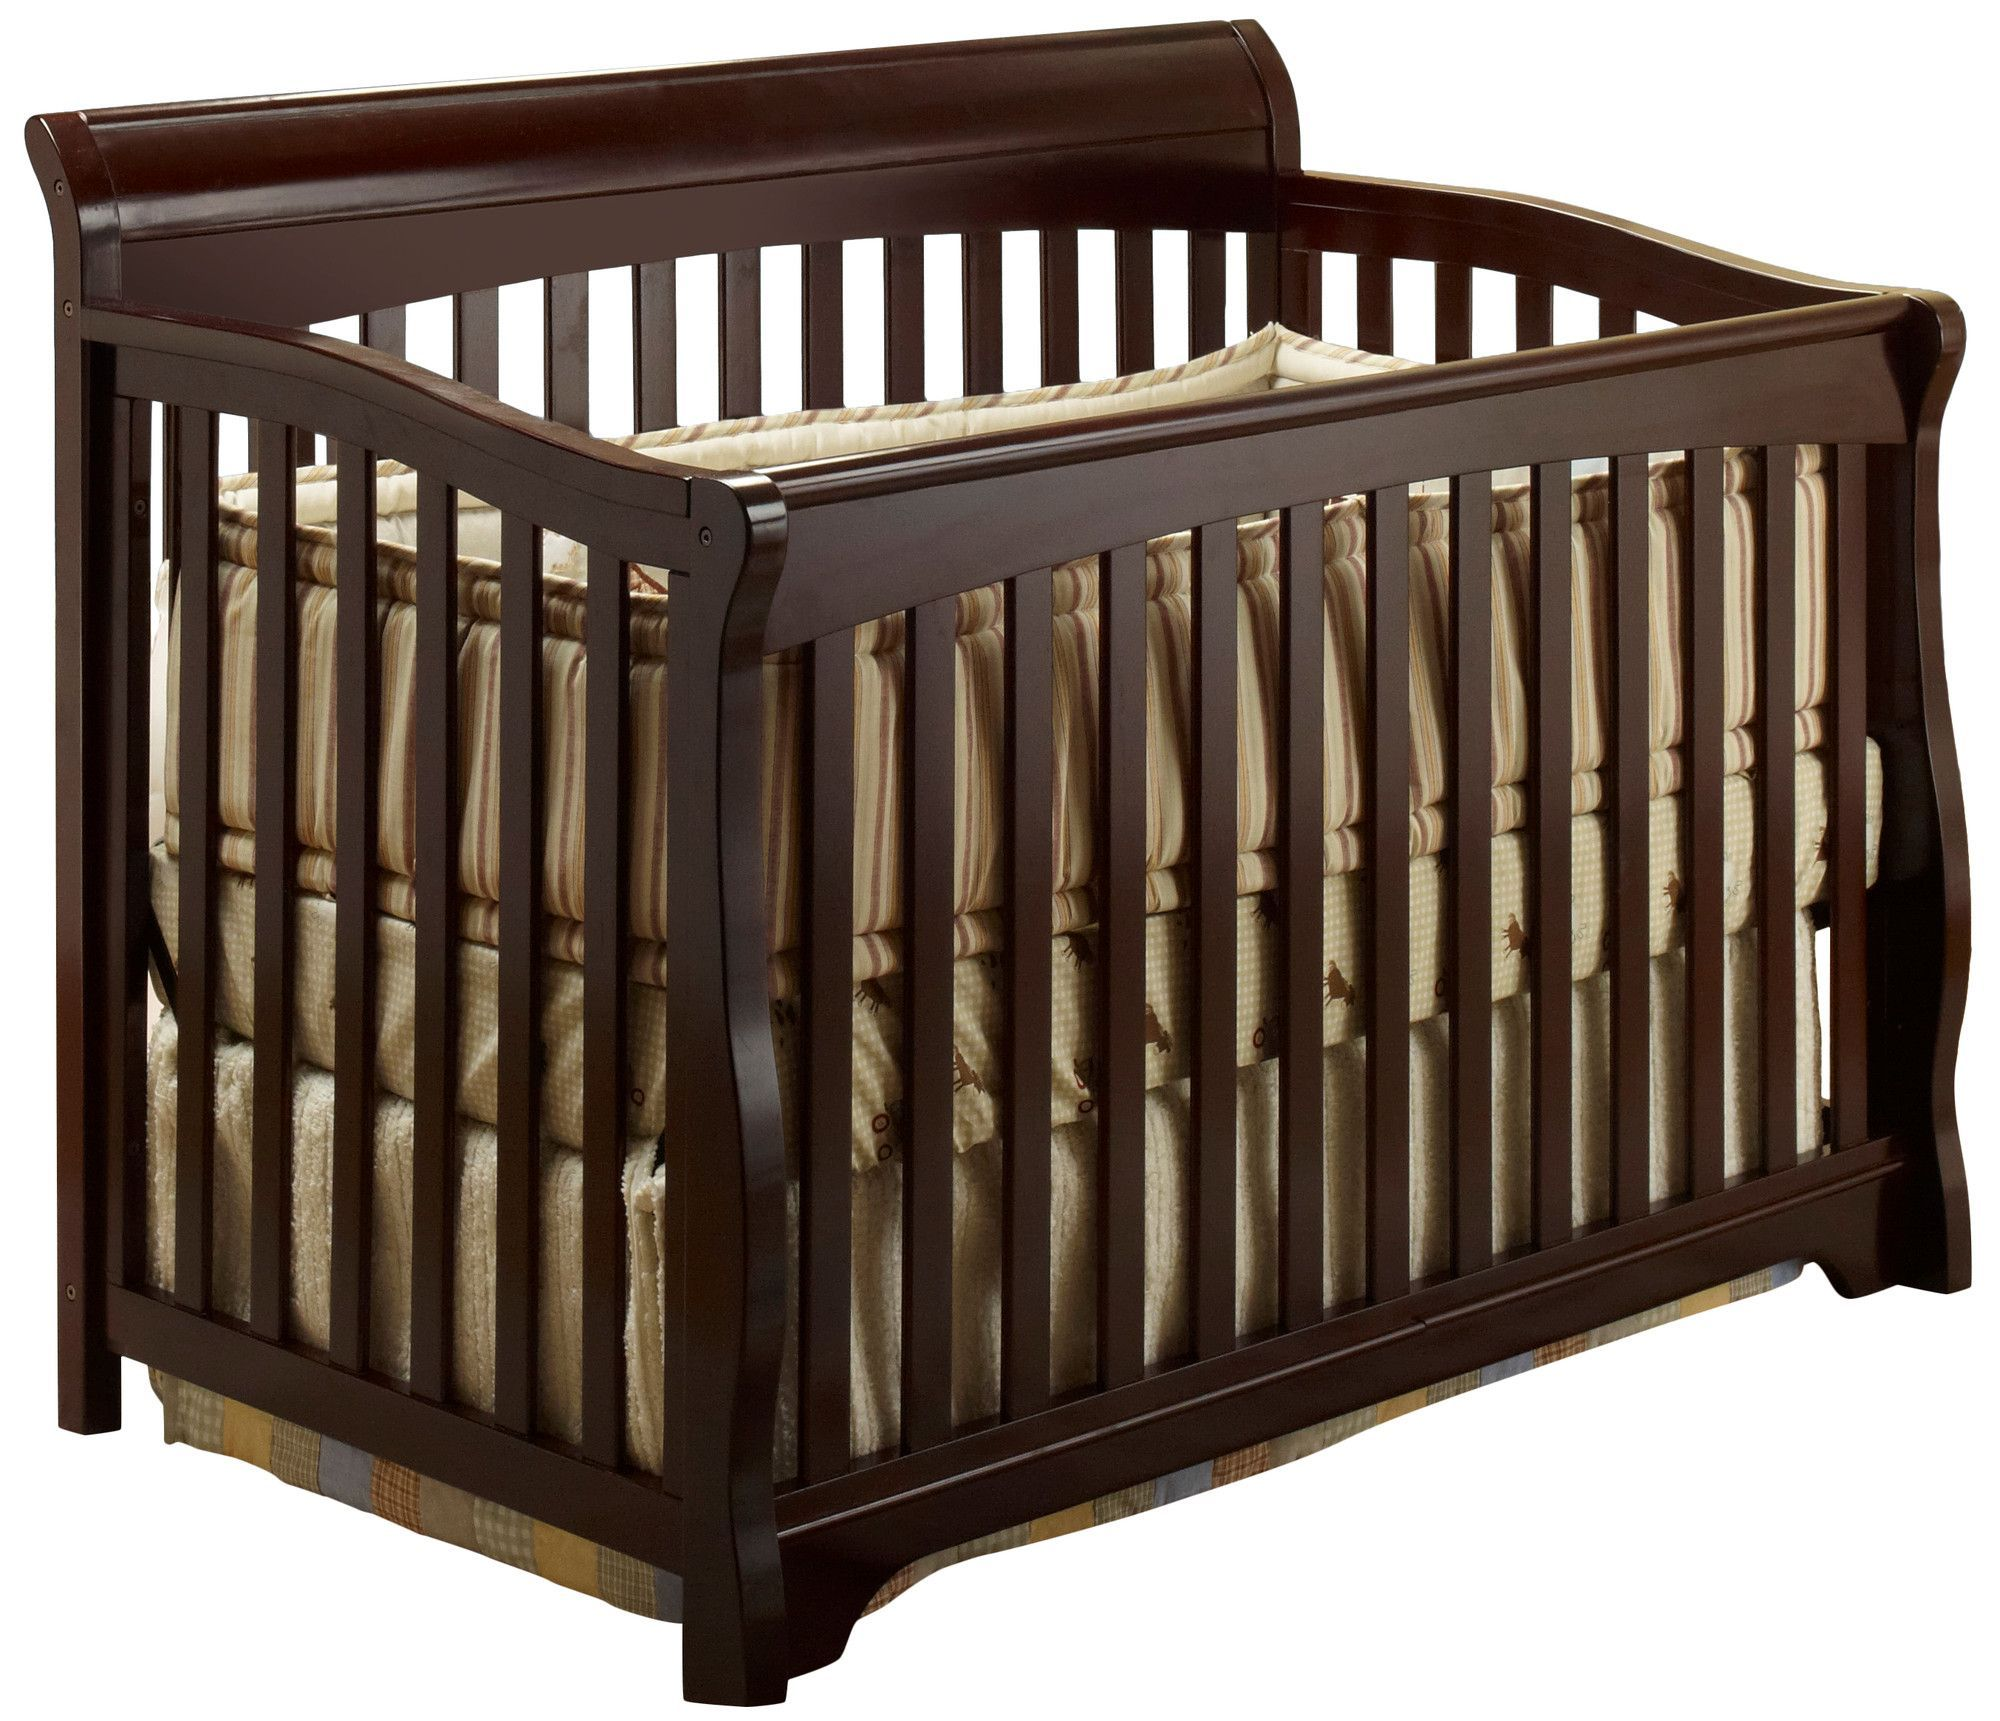 Florence 3 In 1 Convertible Crib Convertible Crib Cribs 4 In 1